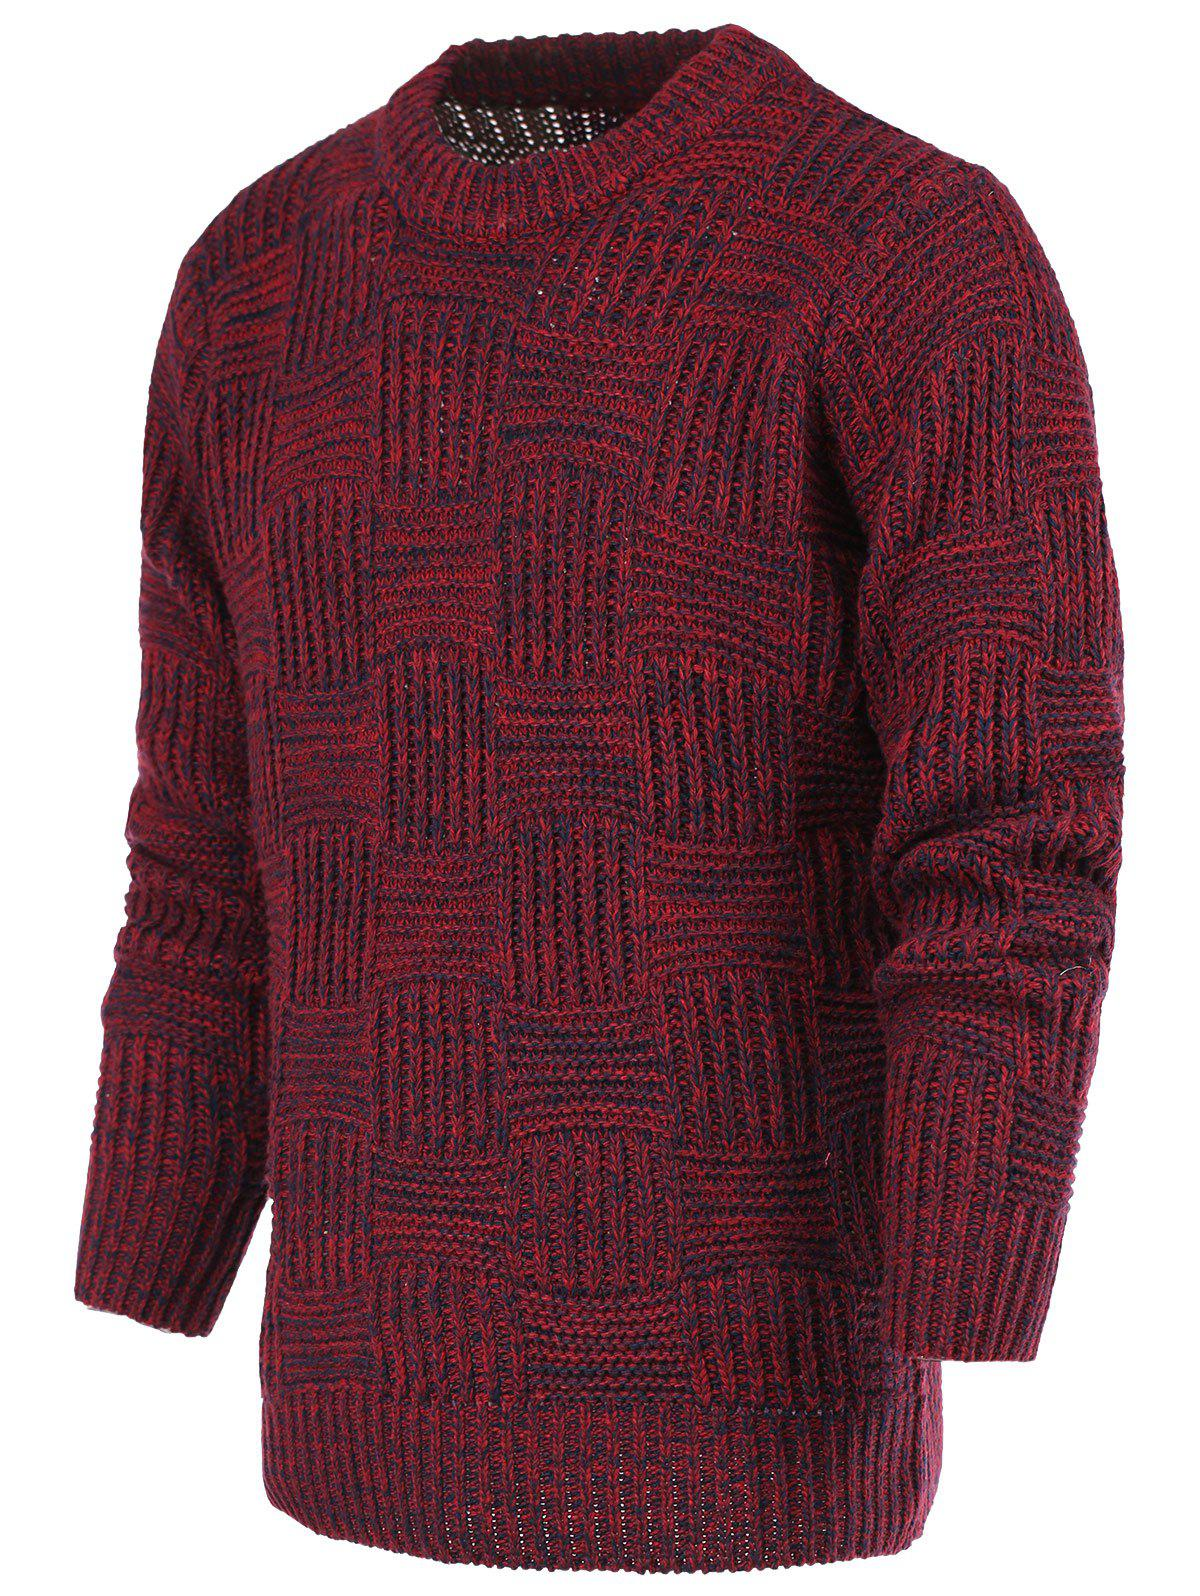 Unique Ribbed Plaid Pattern Crew Neck Long Sleeve Sweater For Men